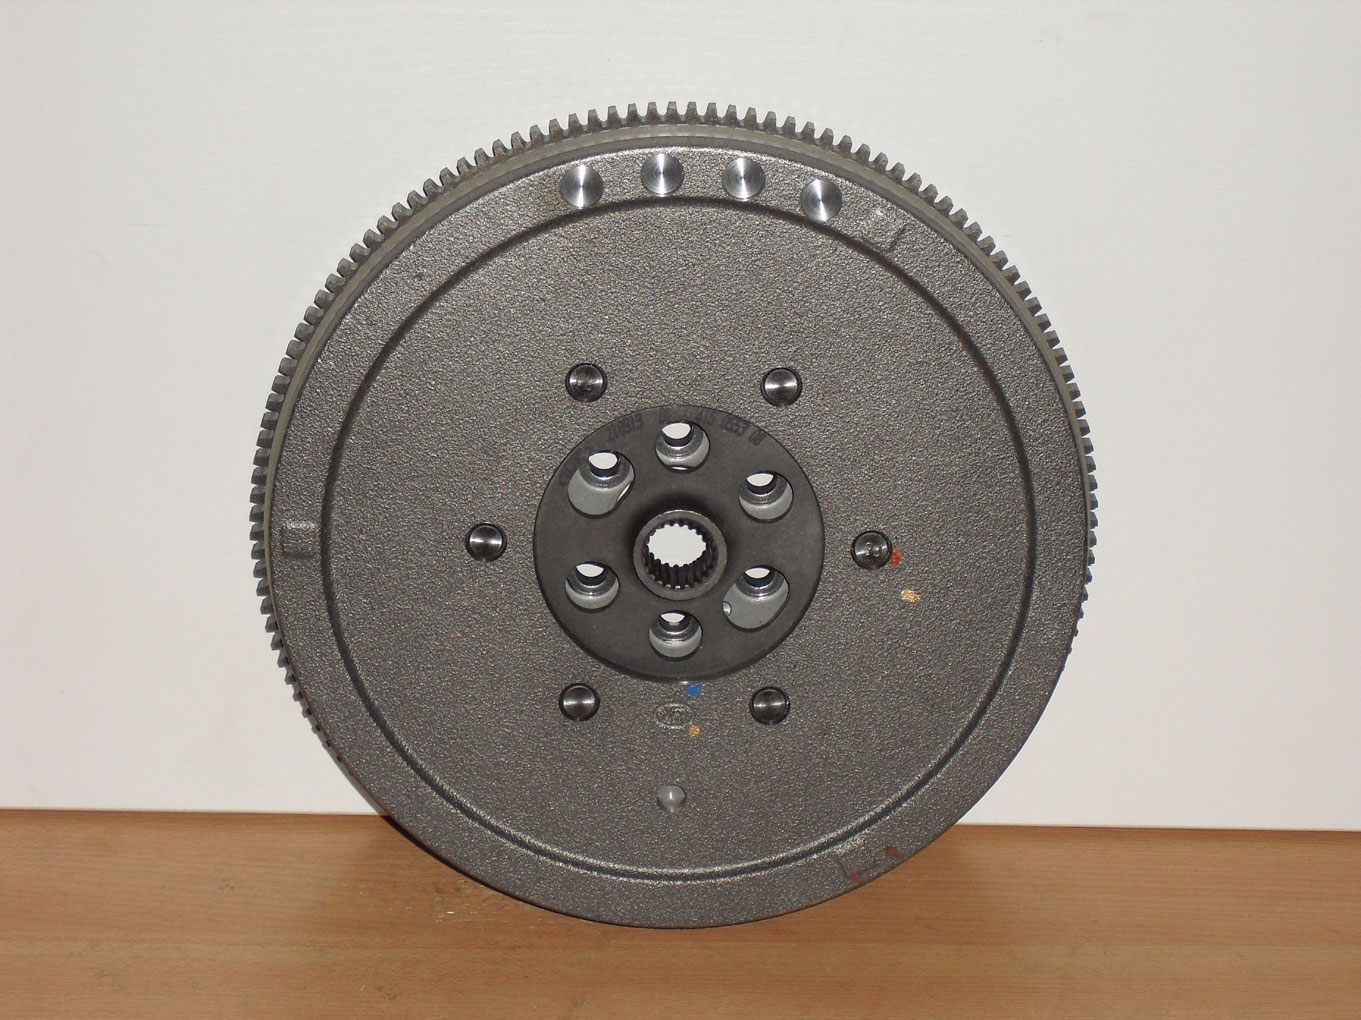 LUK 415 0553 08 Fly Wheel